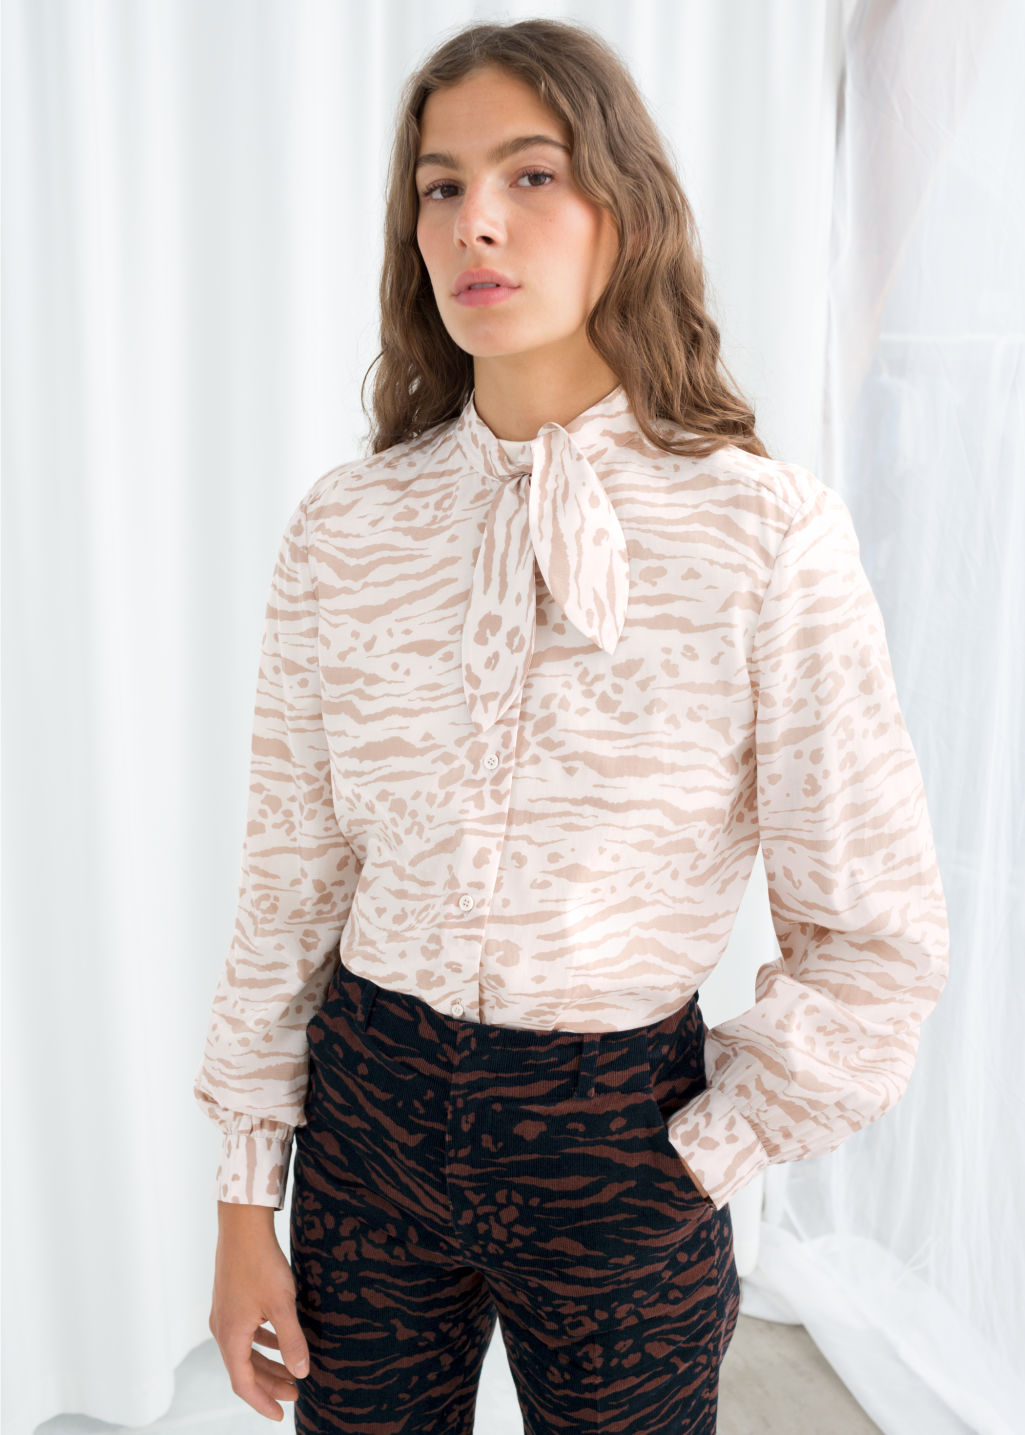 f948252160 Animal Print Pussy Bow Blouse - Animal Print - Blouses -   Other Stories